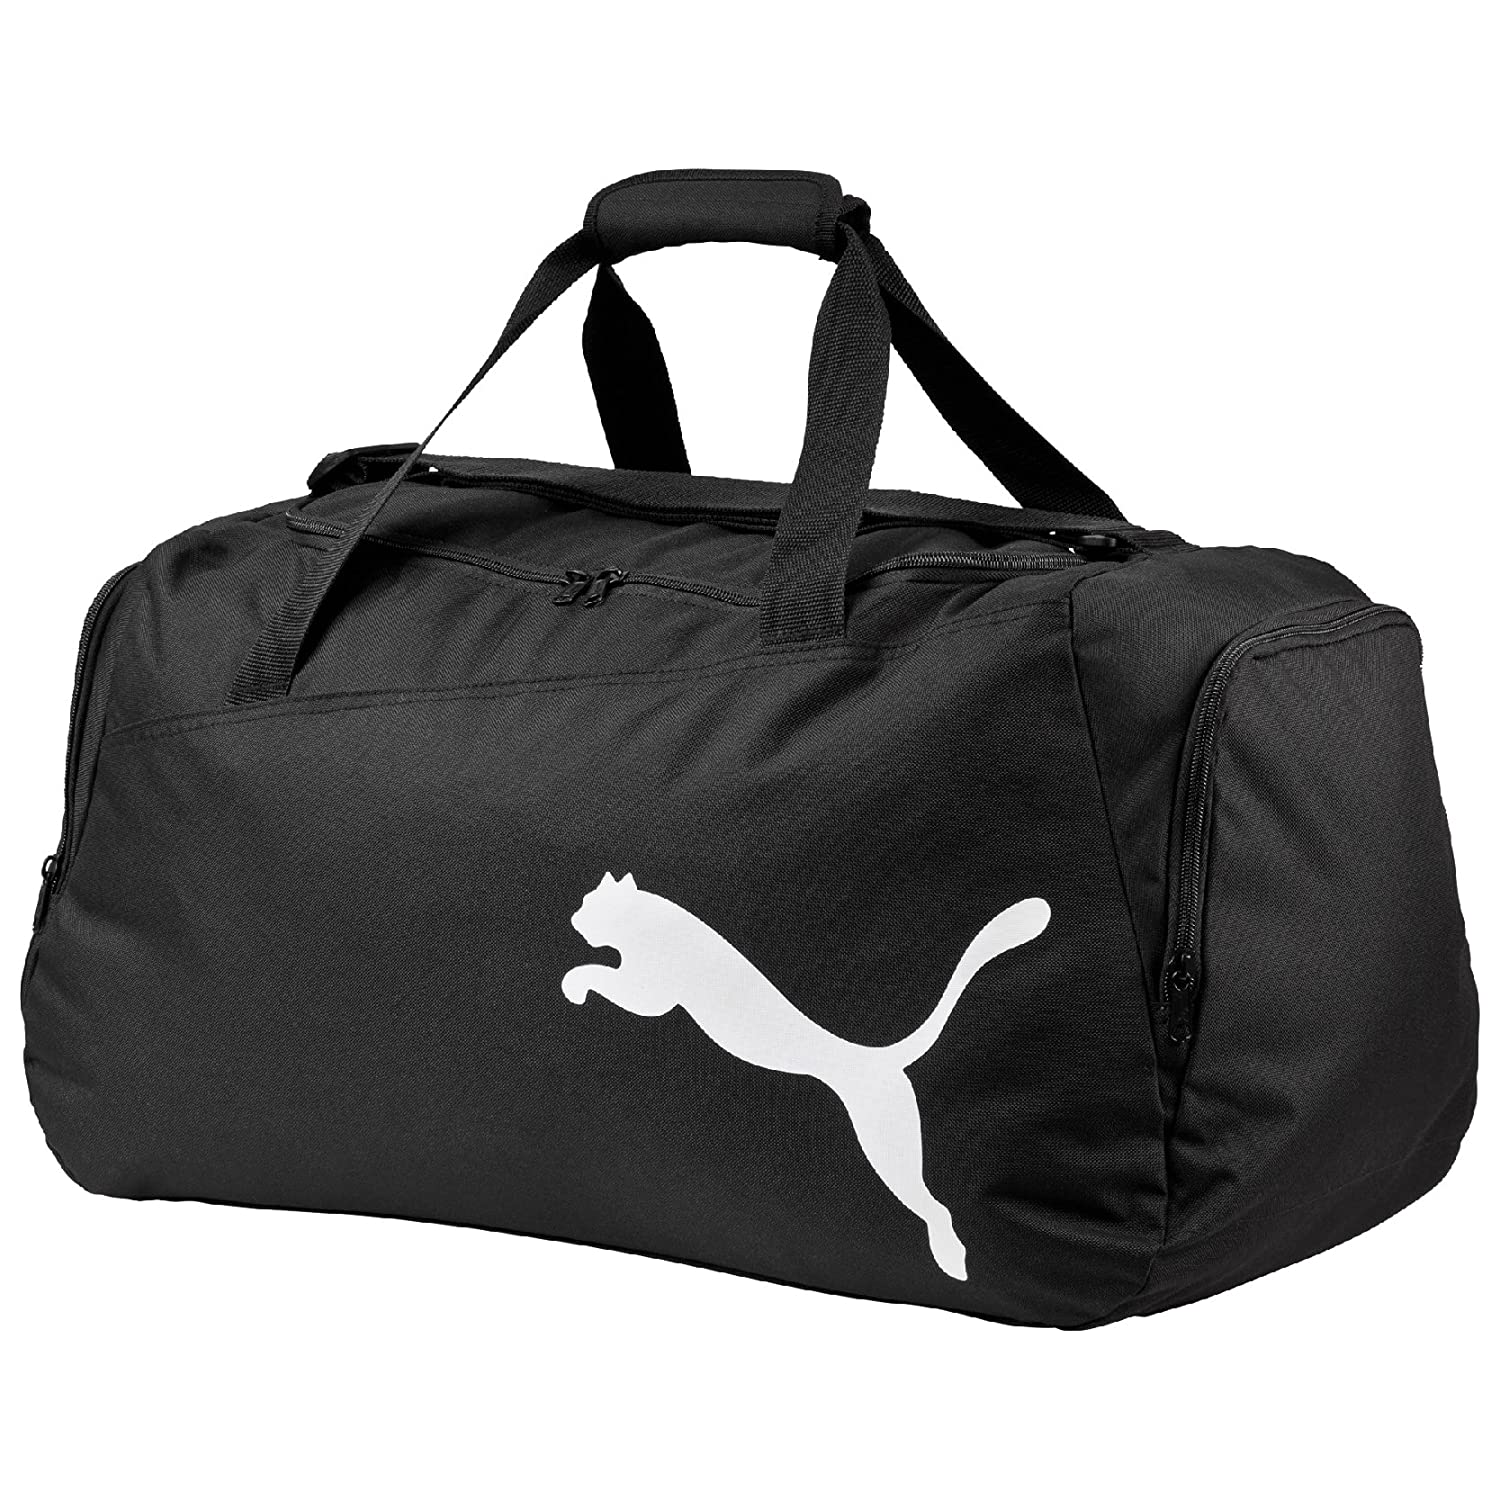 PUMA Sporttasche Pro Training Medium Bag - Bolsa de deporte 072938 01